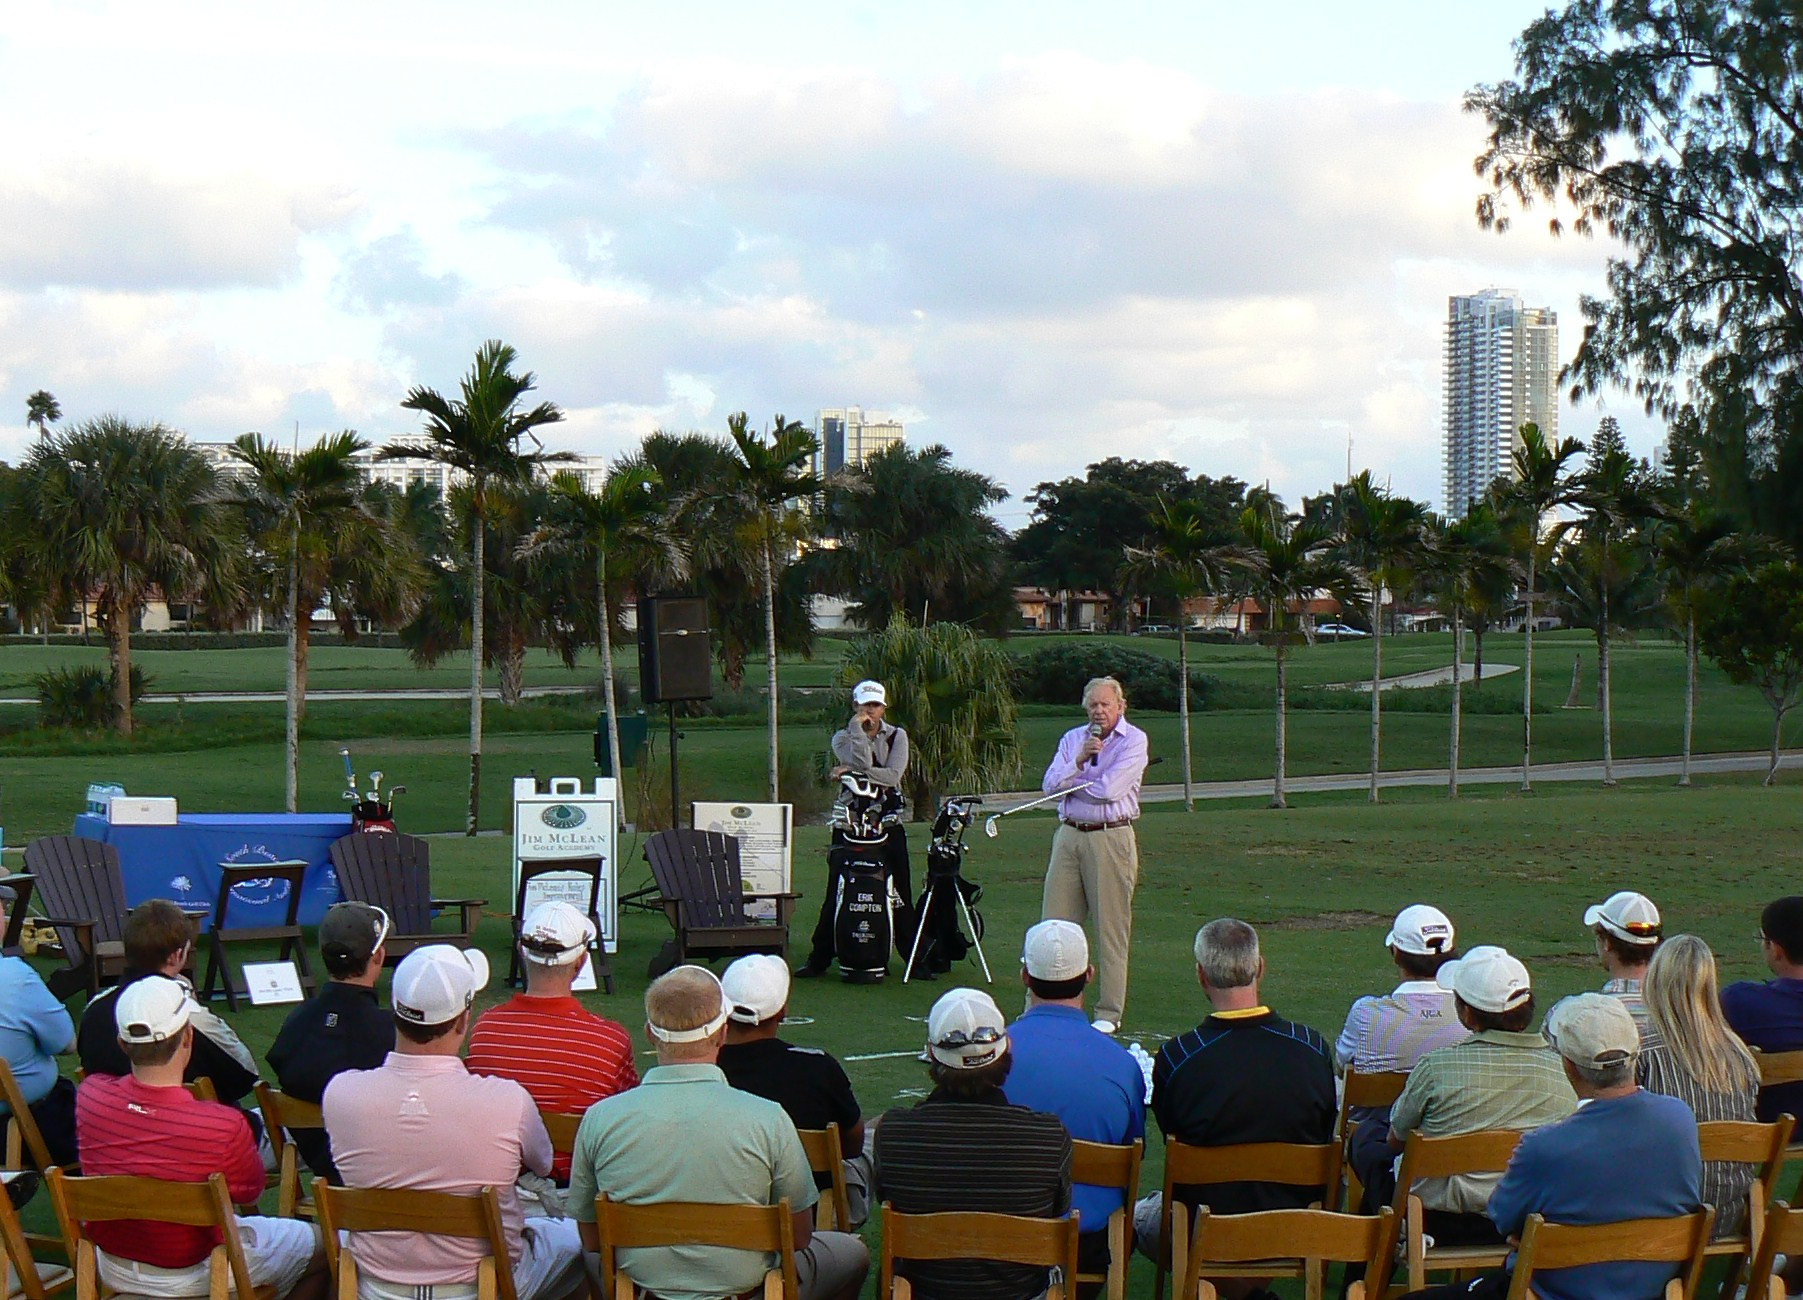 Corporate Clinics - Customized to fit any need. Call to discuss how we can accommodate your event. 305-591-6409